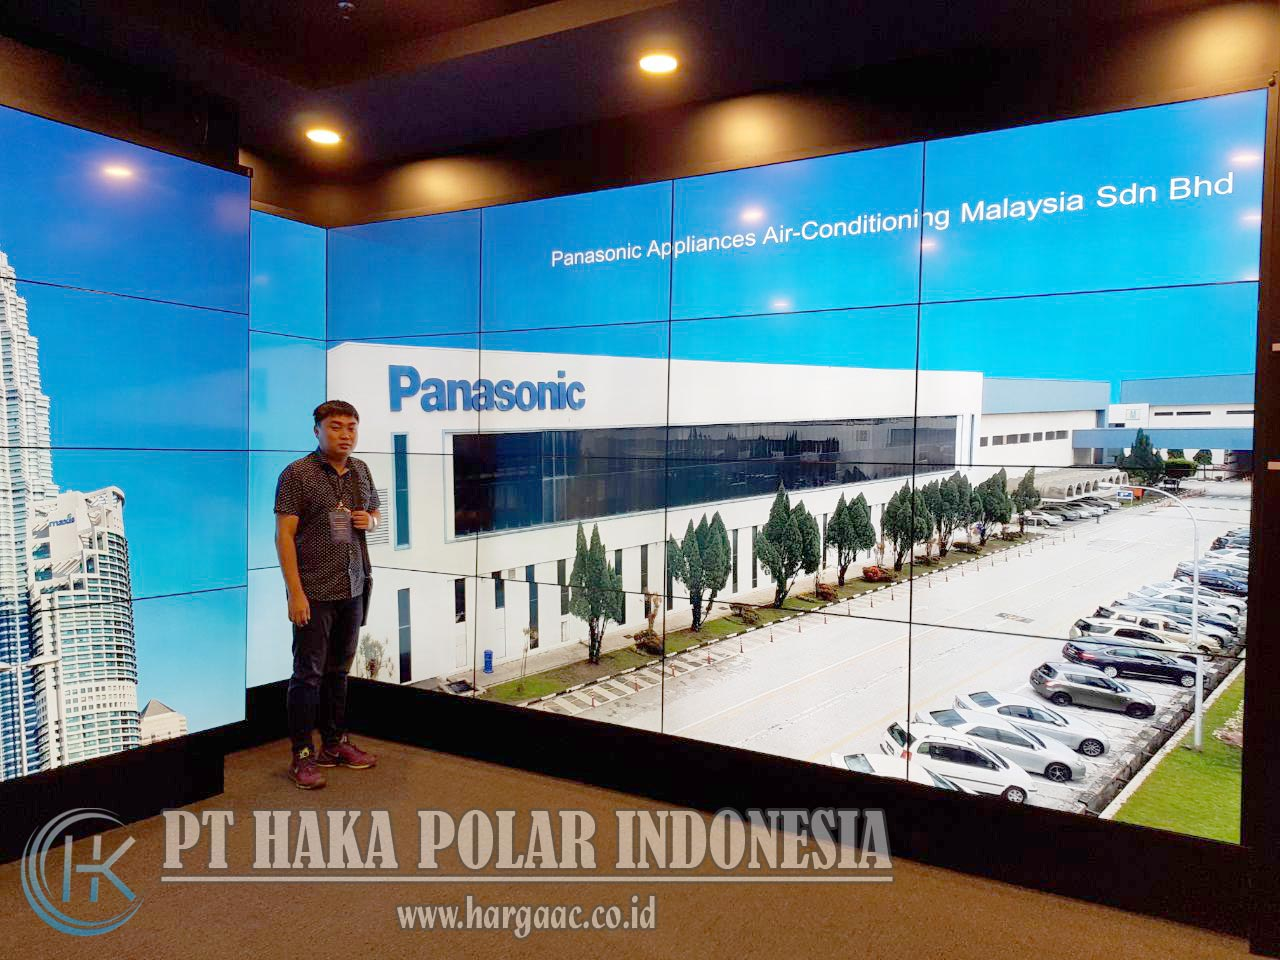 Workshop Inverter Factory Visit Panasonic Air Conditioning AC 2017 di Pabrik AC Panasonic Appliances Air Conditioning Malaysia